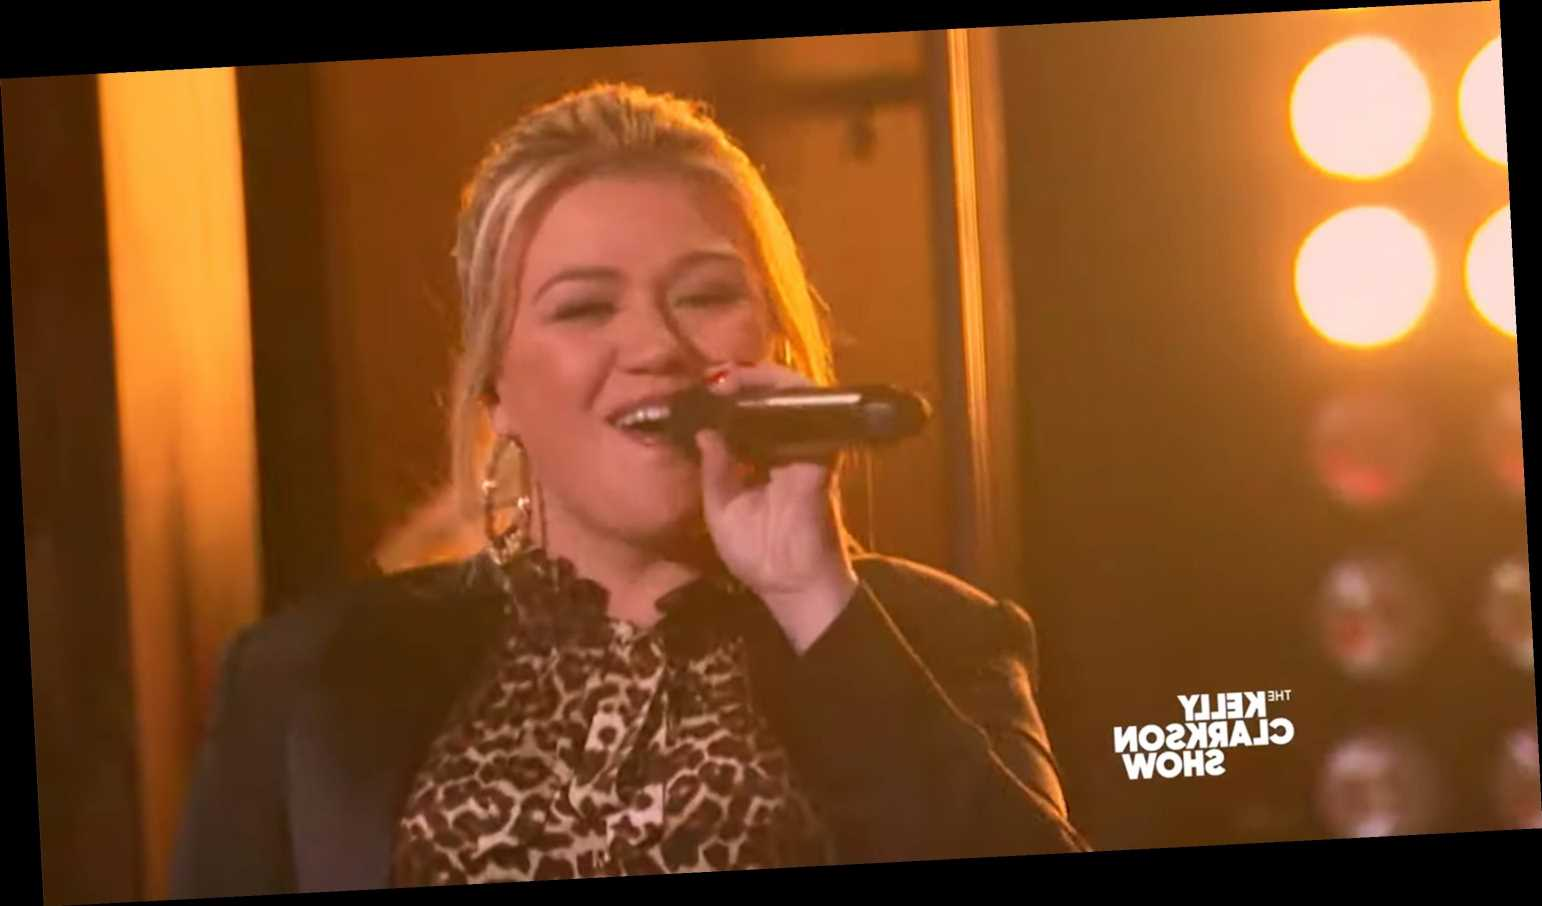 Watch Kelly Clarkson and Kristin Chenoweth break out into an impromptu musical song